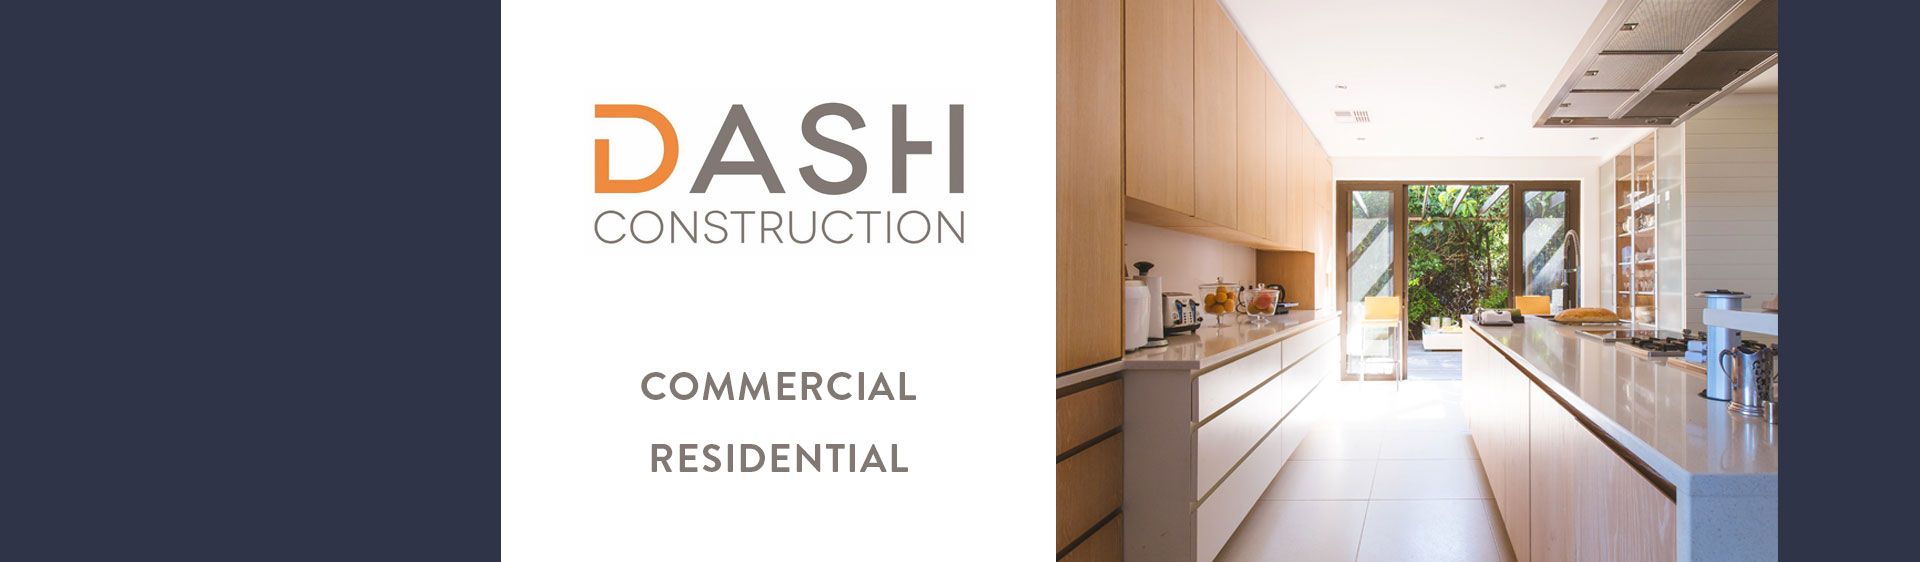 Dash Construction - General Contractor